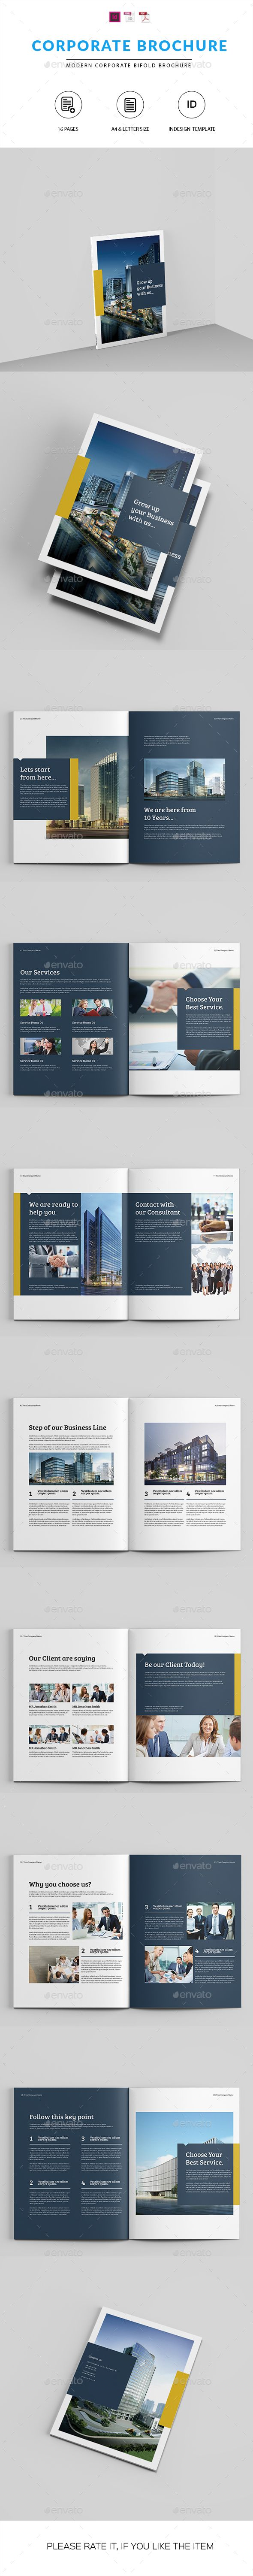 Company Brochure Template InDesign INDD. Download here: http://graphicriver.net/item/company-brochure-indesign-template/16071619?ref=ksioks  분양관련한 카다로그 레이아웃으로 좋아보임